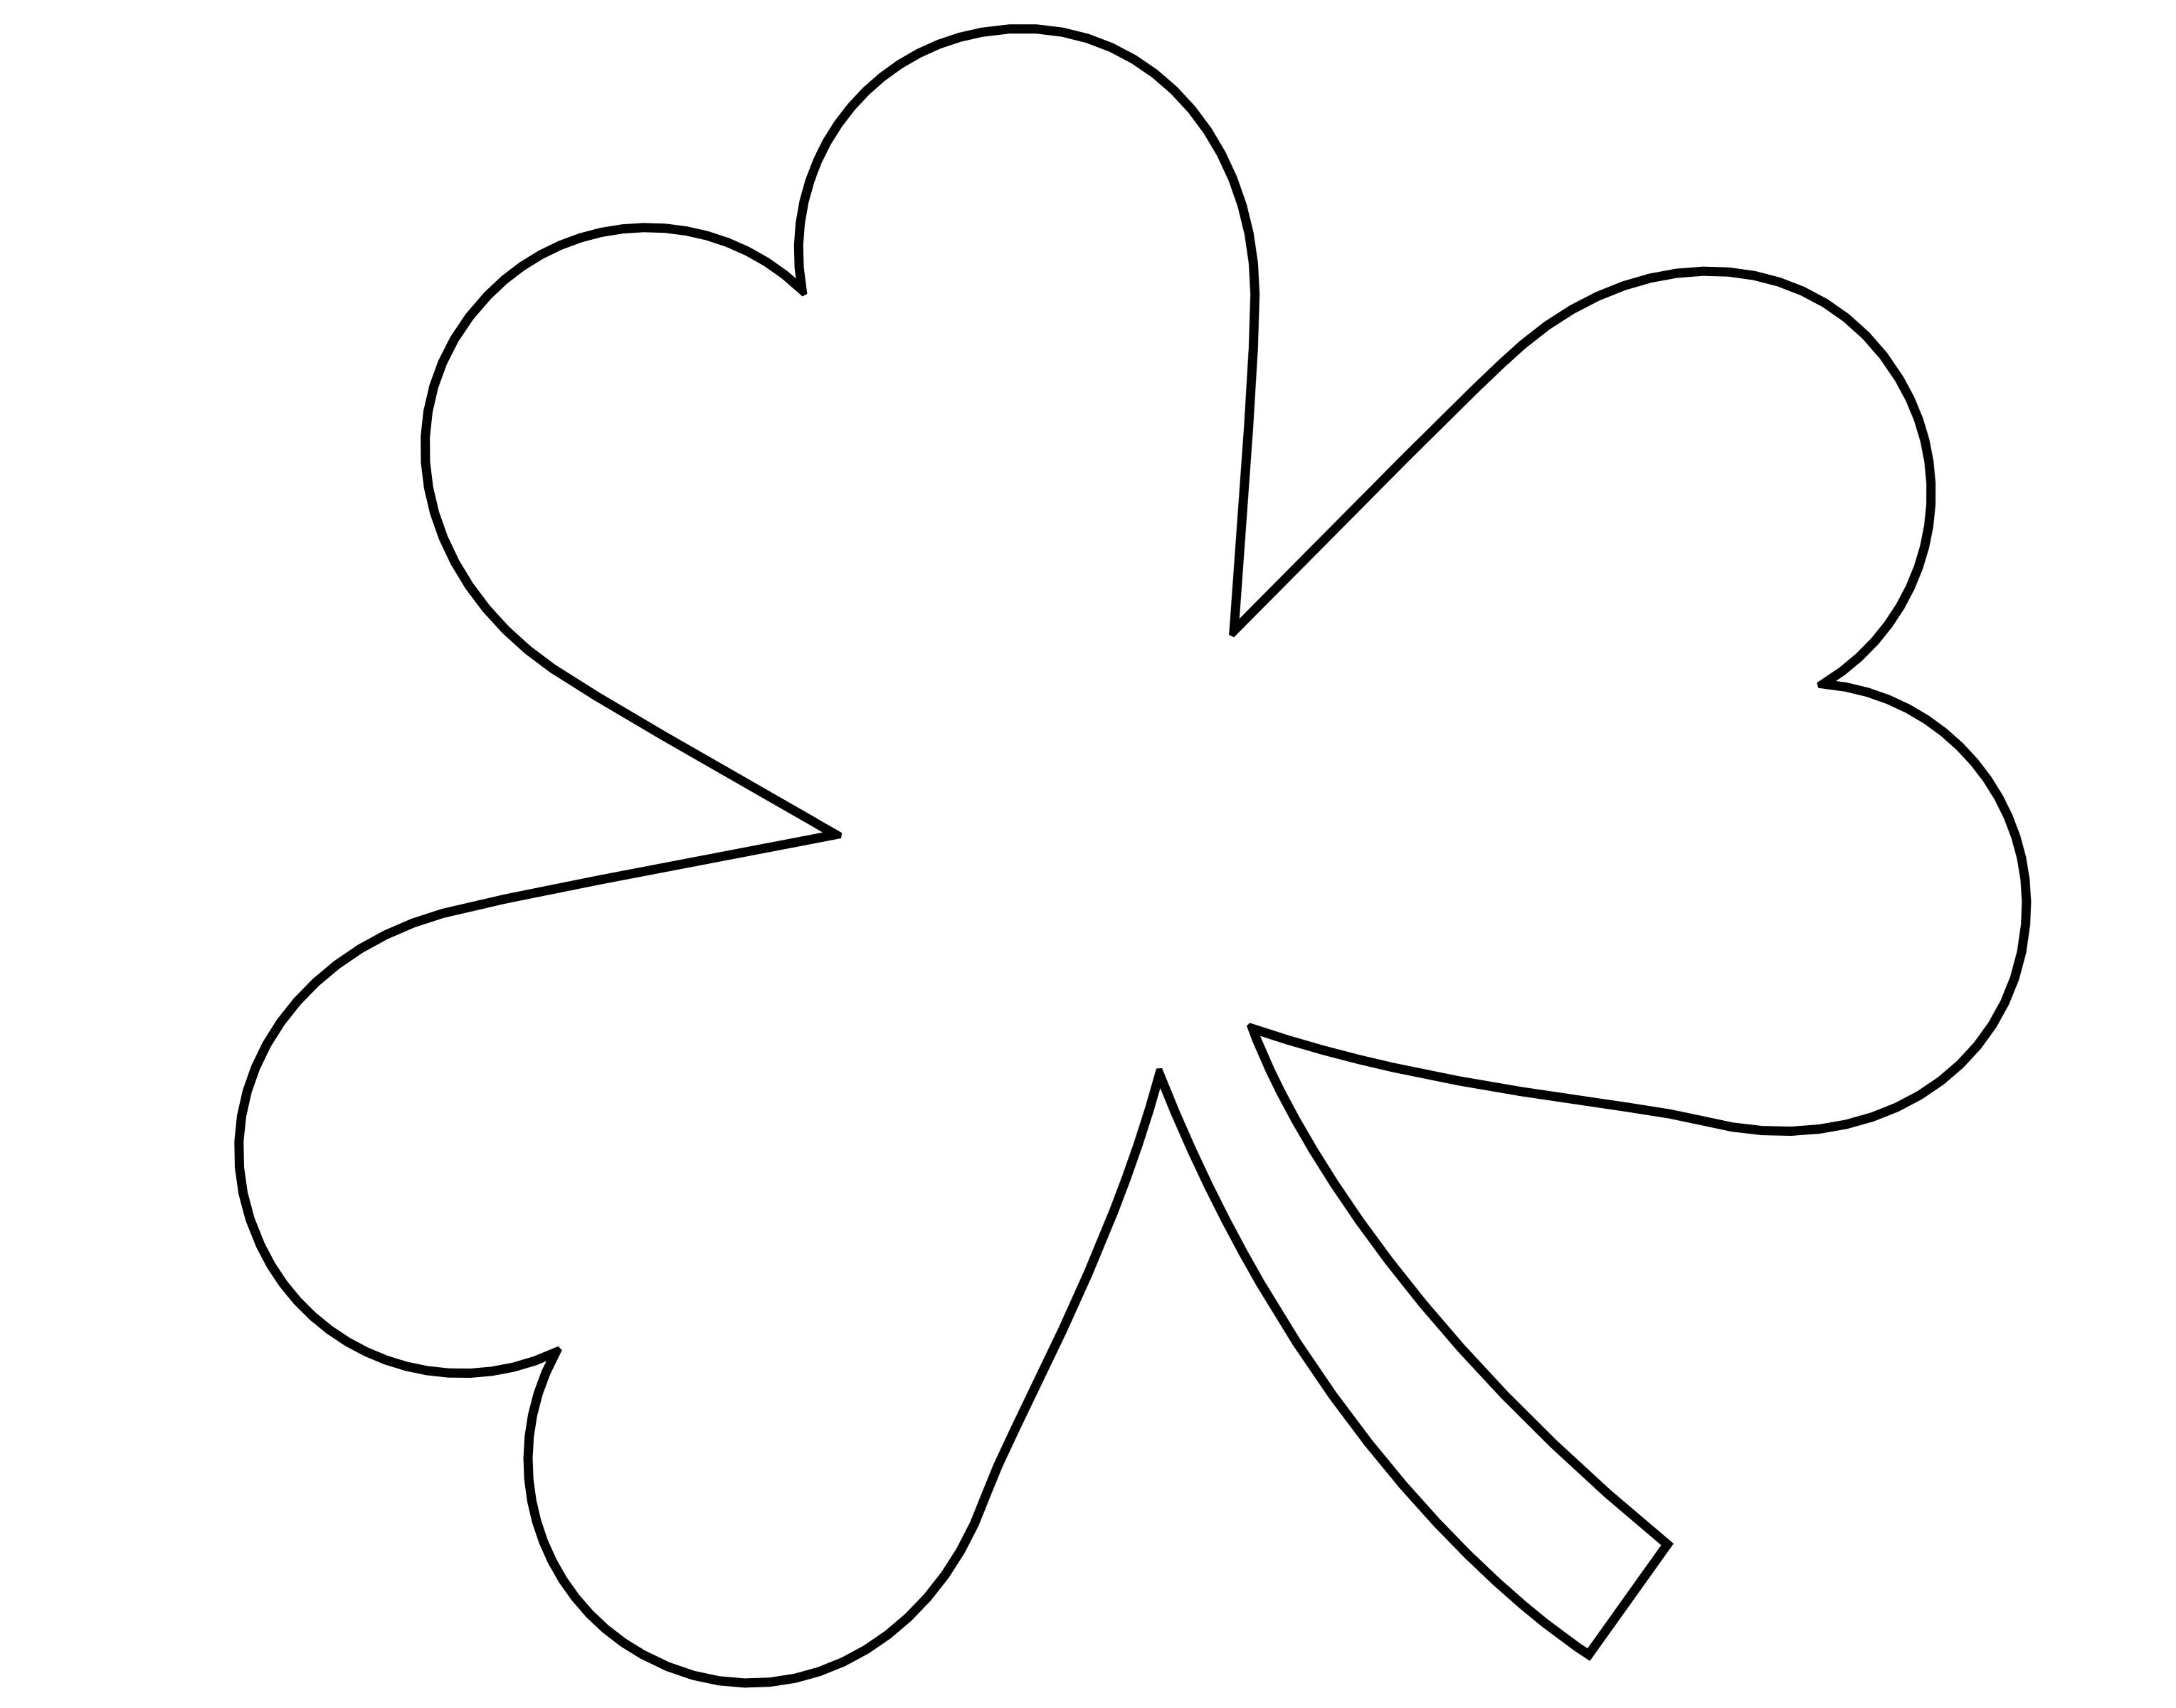 graphic relating to Shamrock Template Printable Free called Shamrock Lower Out Template Child decir Shamrock template